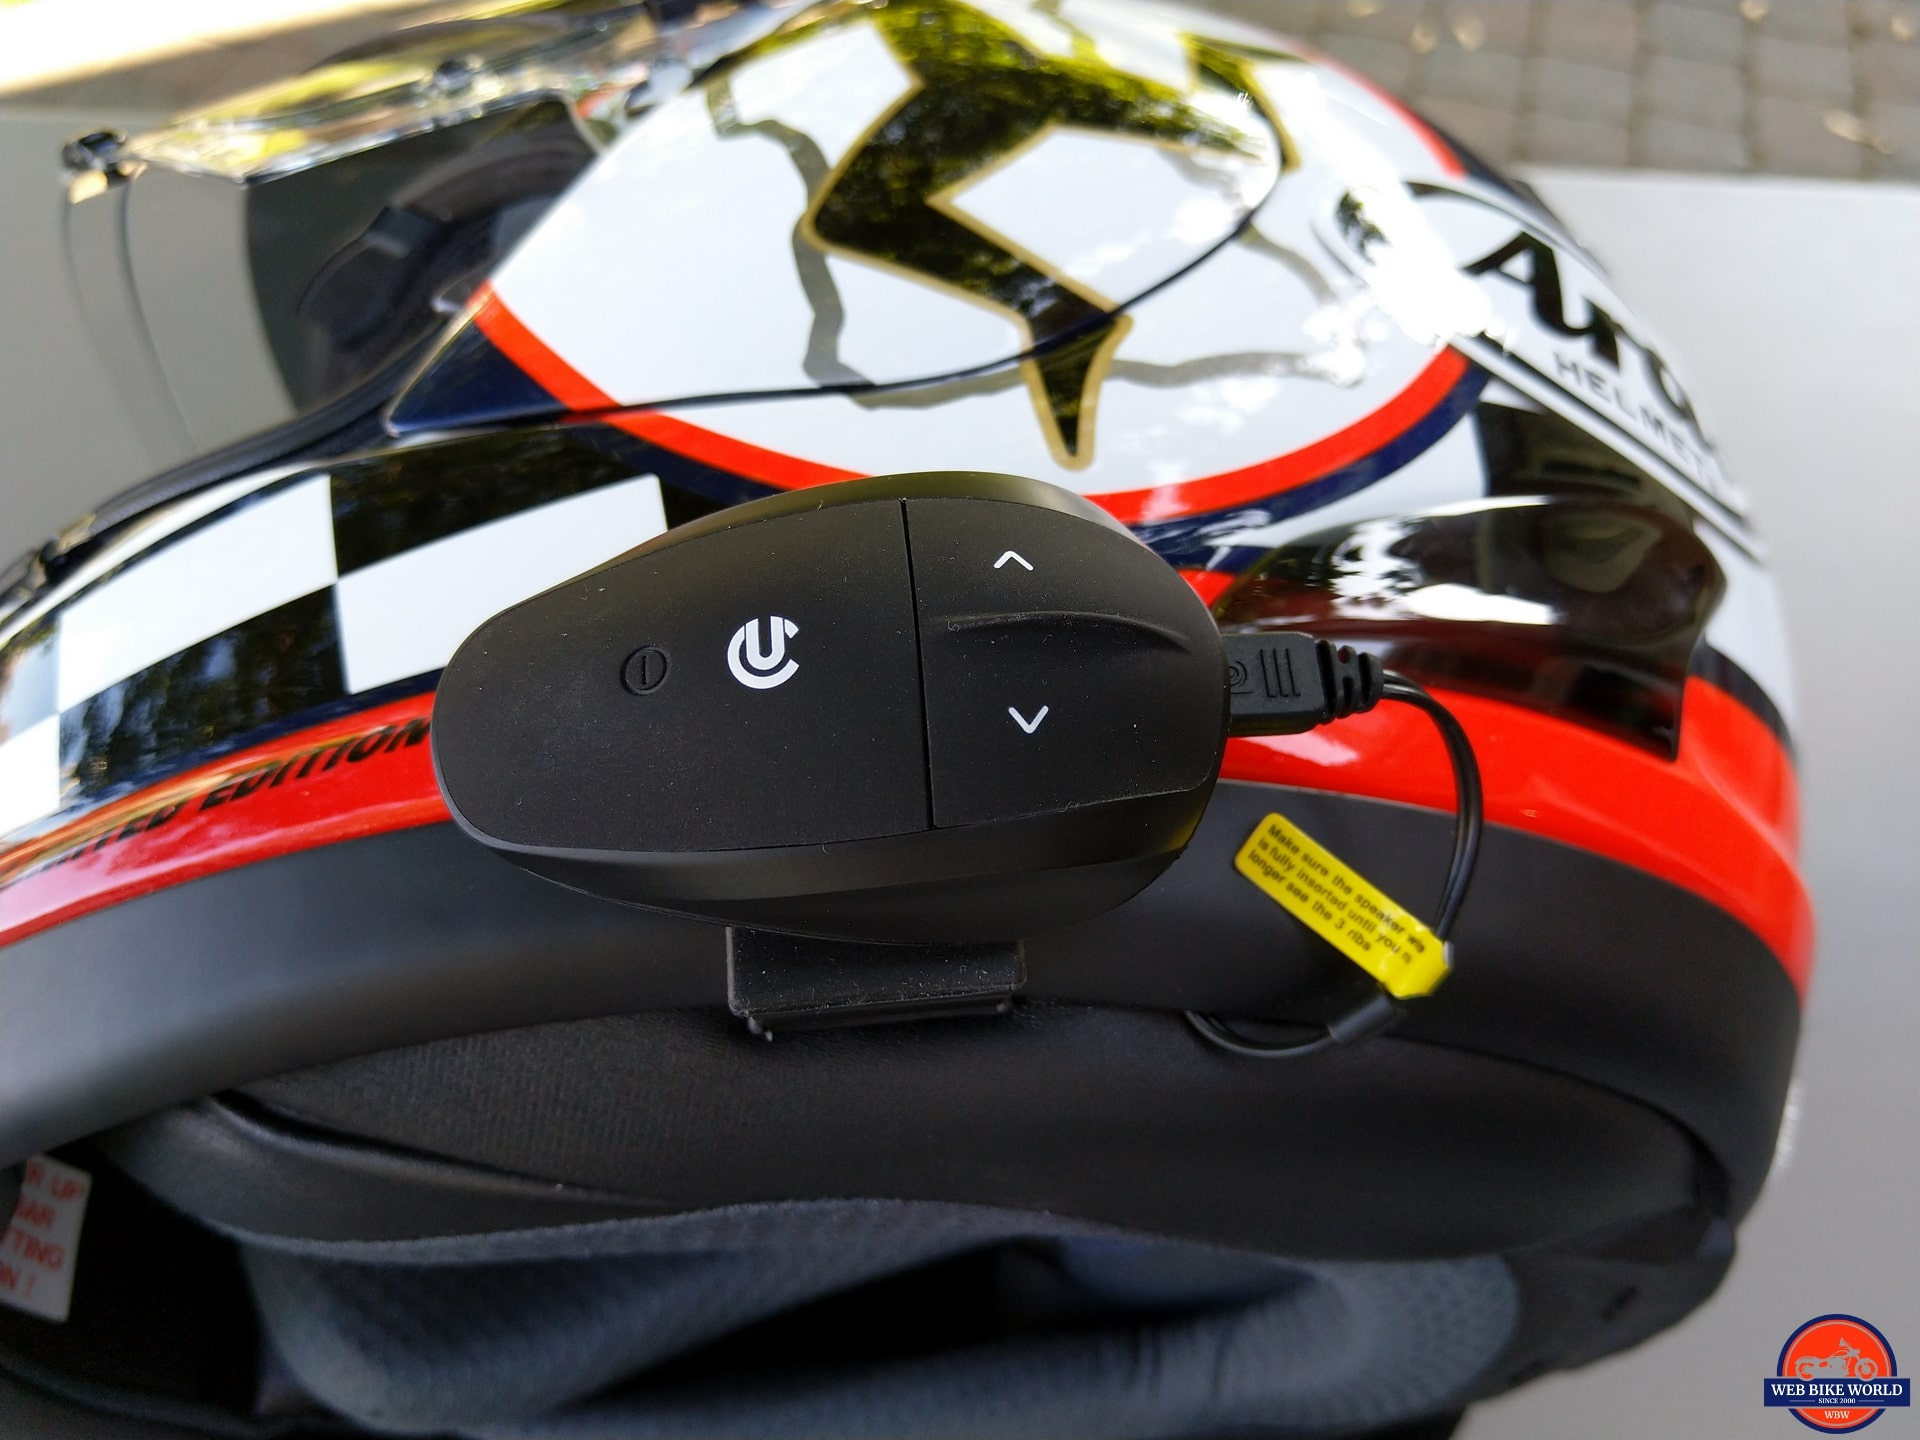 UClear AMP Go BT System mounted on Arai Helmet